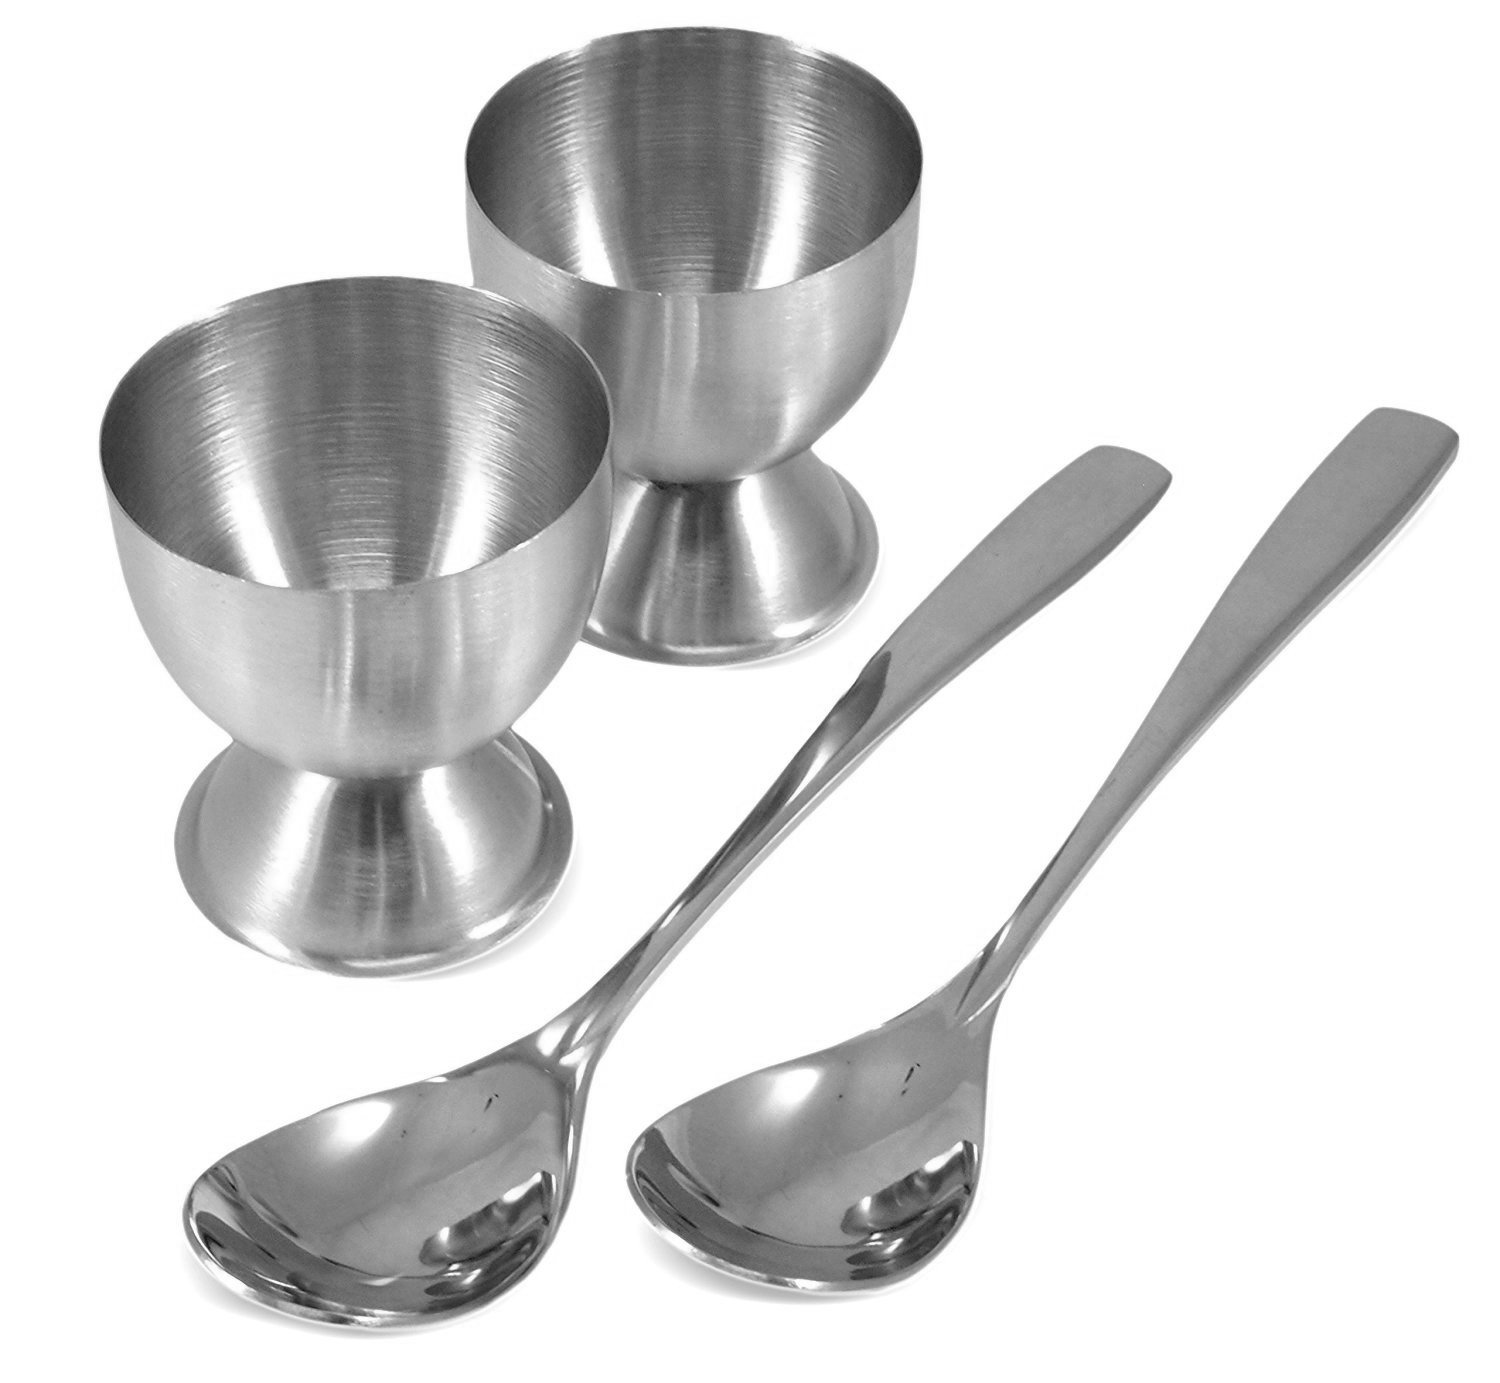 Stainless Steel Egg Cups with Egg Spoons (2 of Each Set) by Cornucopia Brands COMINHKPR95351